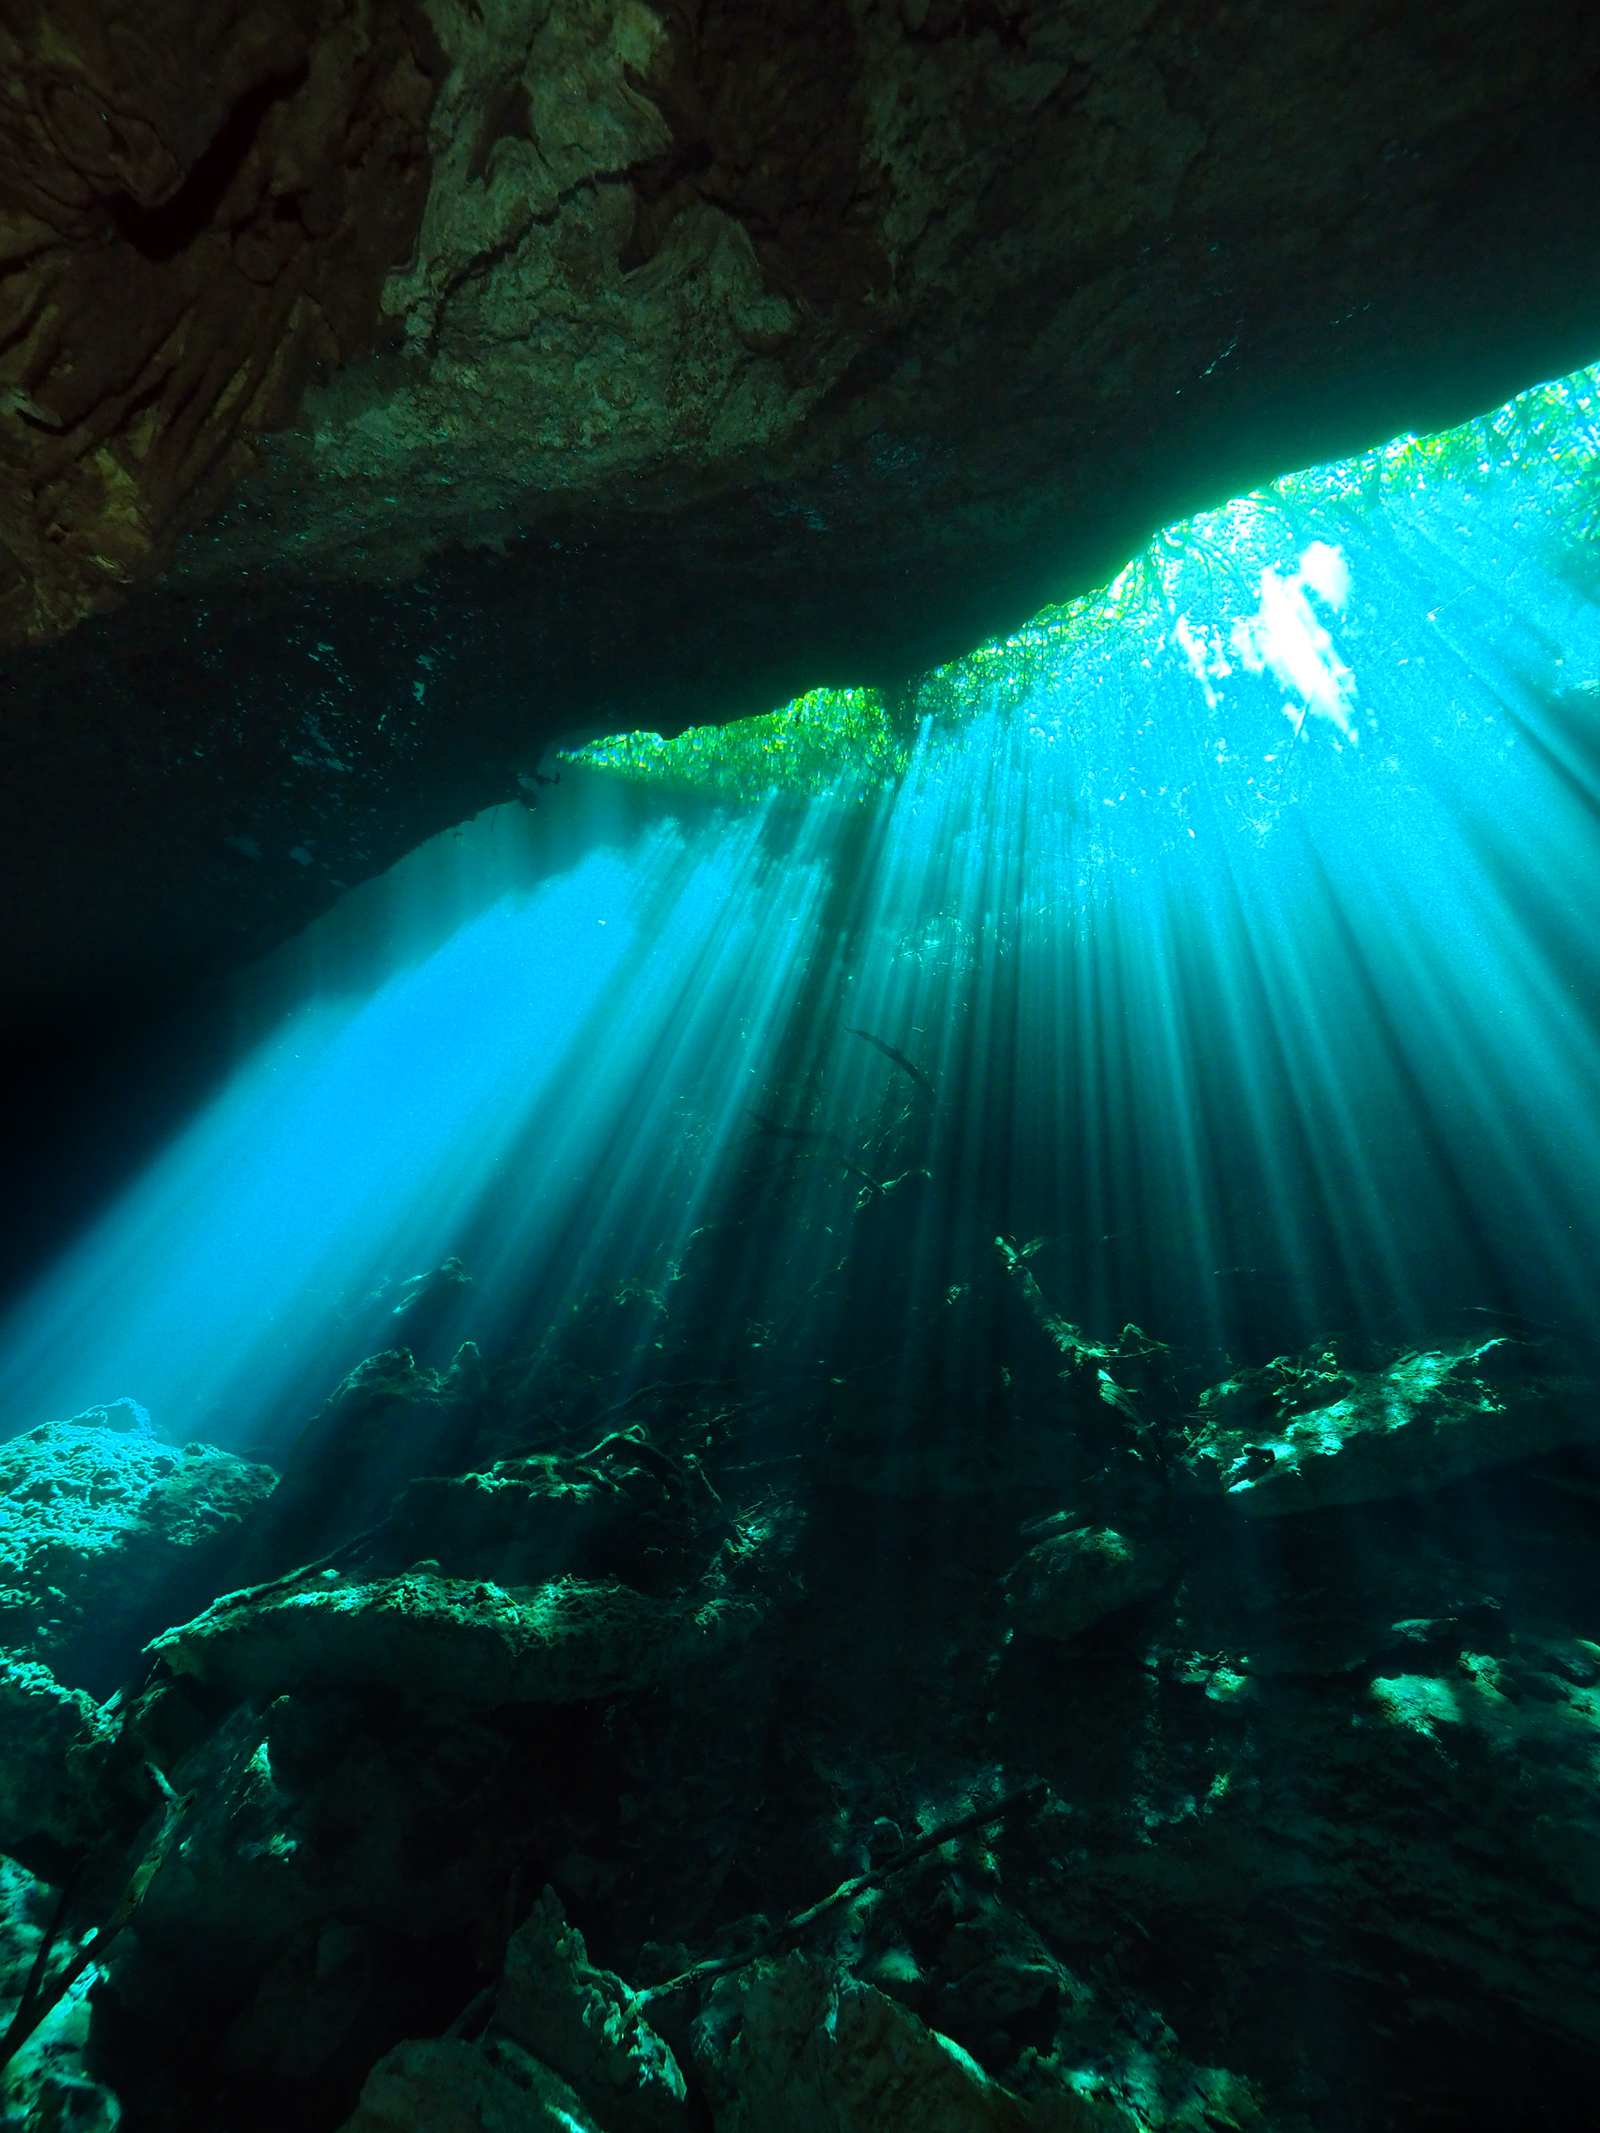 Underwater sunrays at the entrance